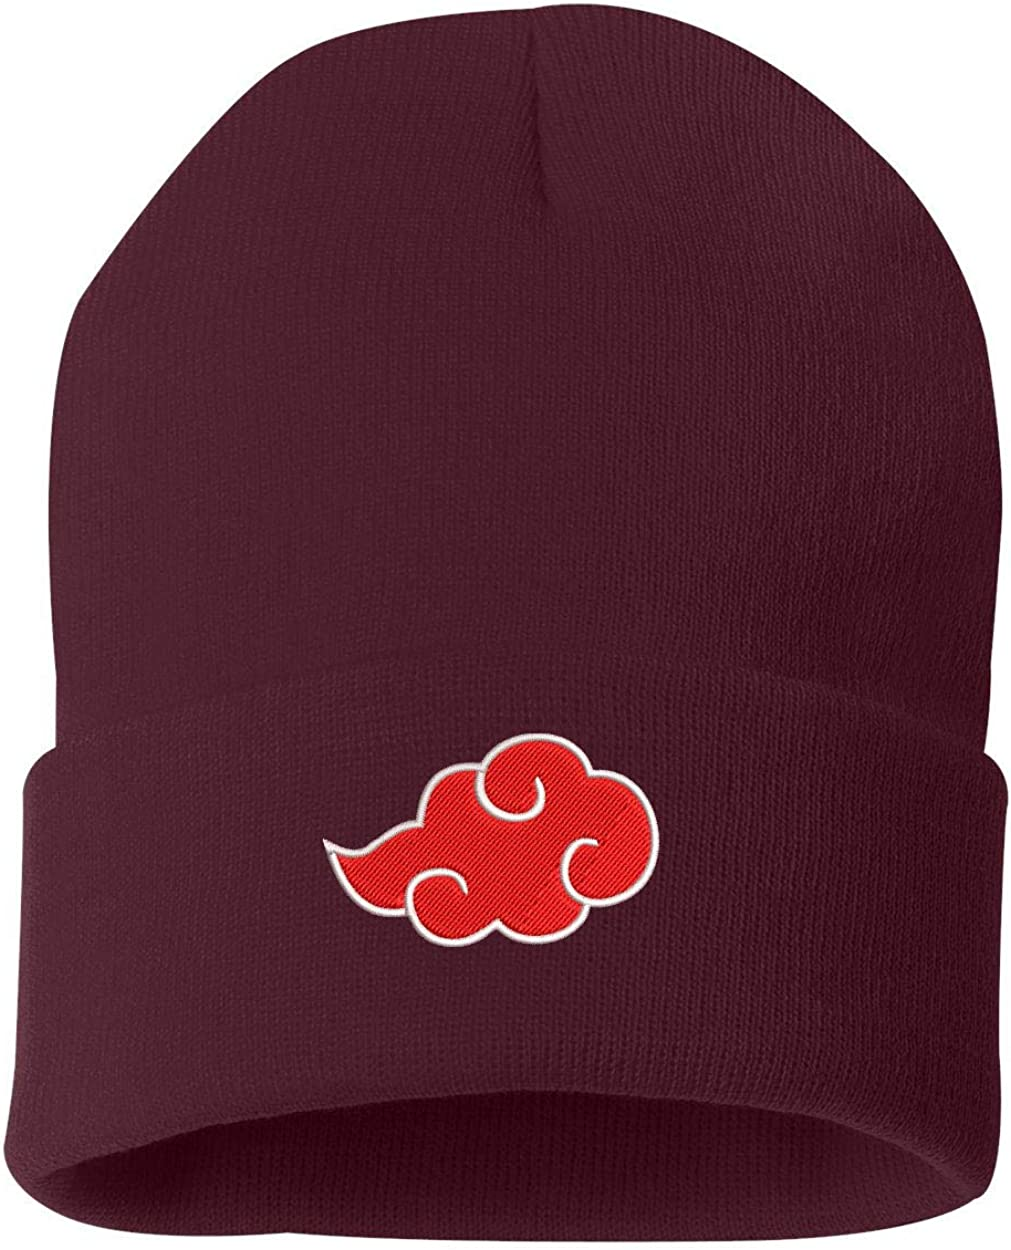 Amazon Com Top Level Apparel Akatsuki Cloud Logo Embroidered Cuffed Knit Winter Unisex Beanie Brown Clothing